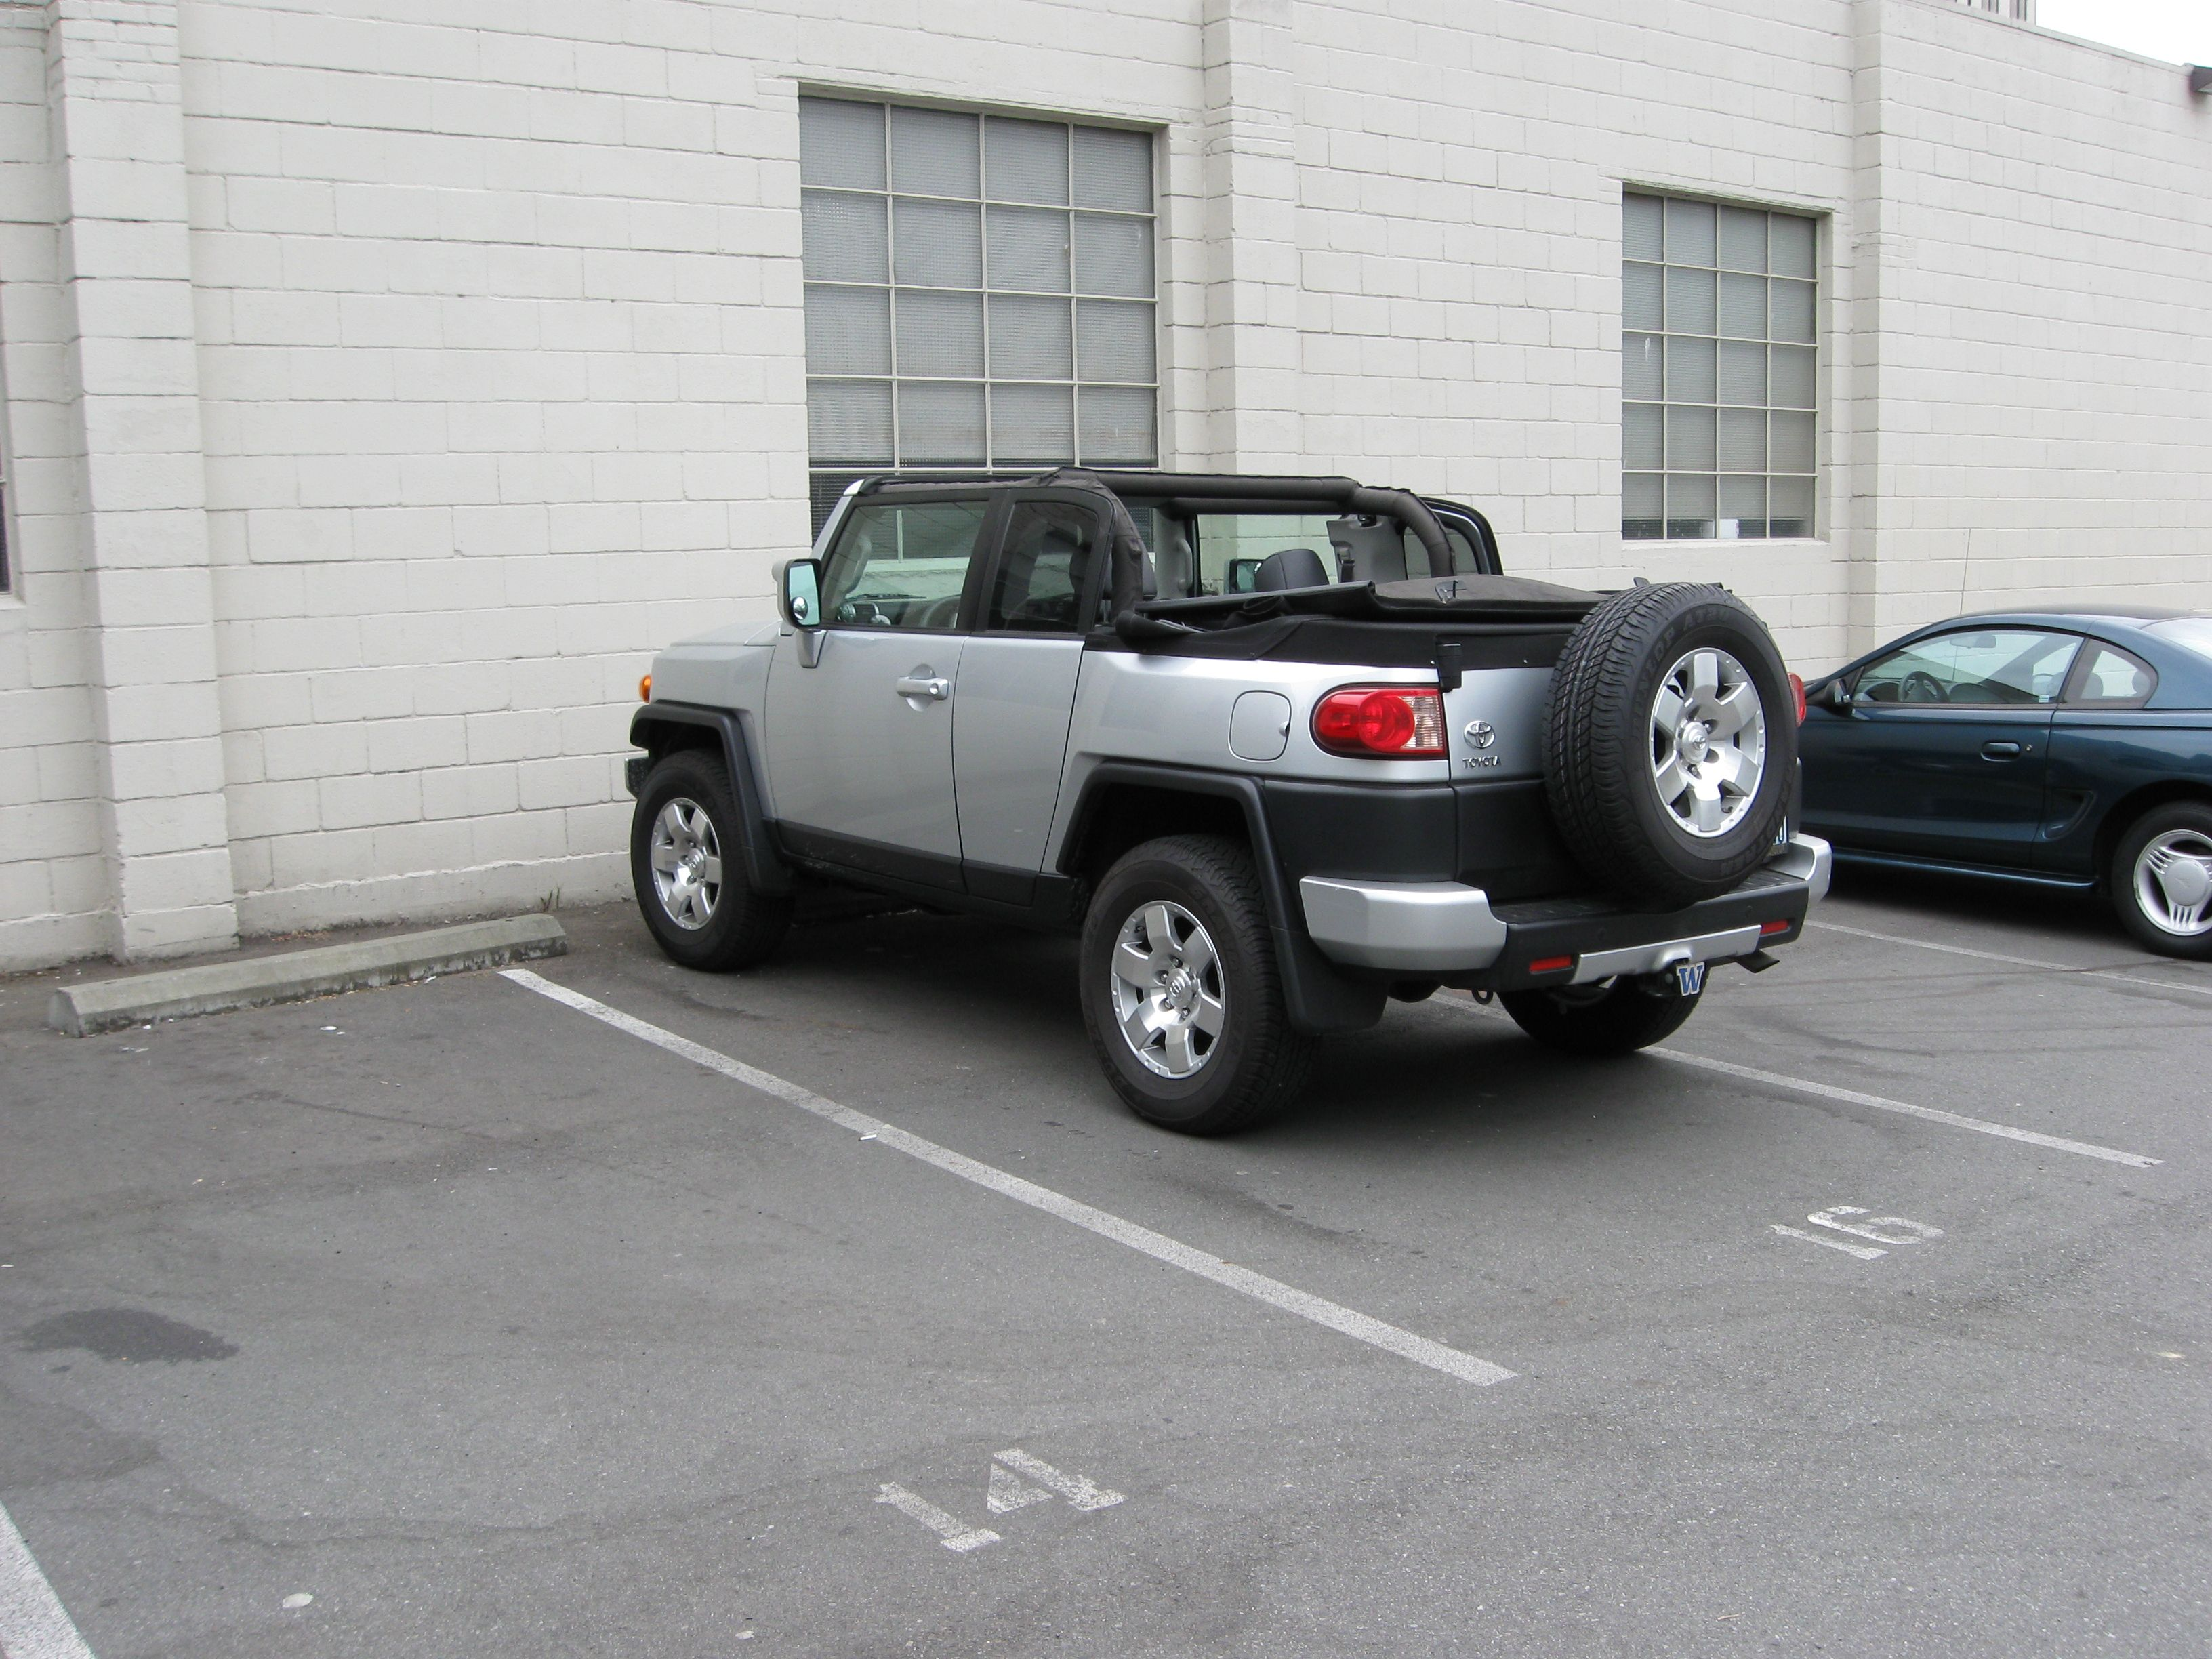 Fj Cruiser Convertible Conversion Very Nice